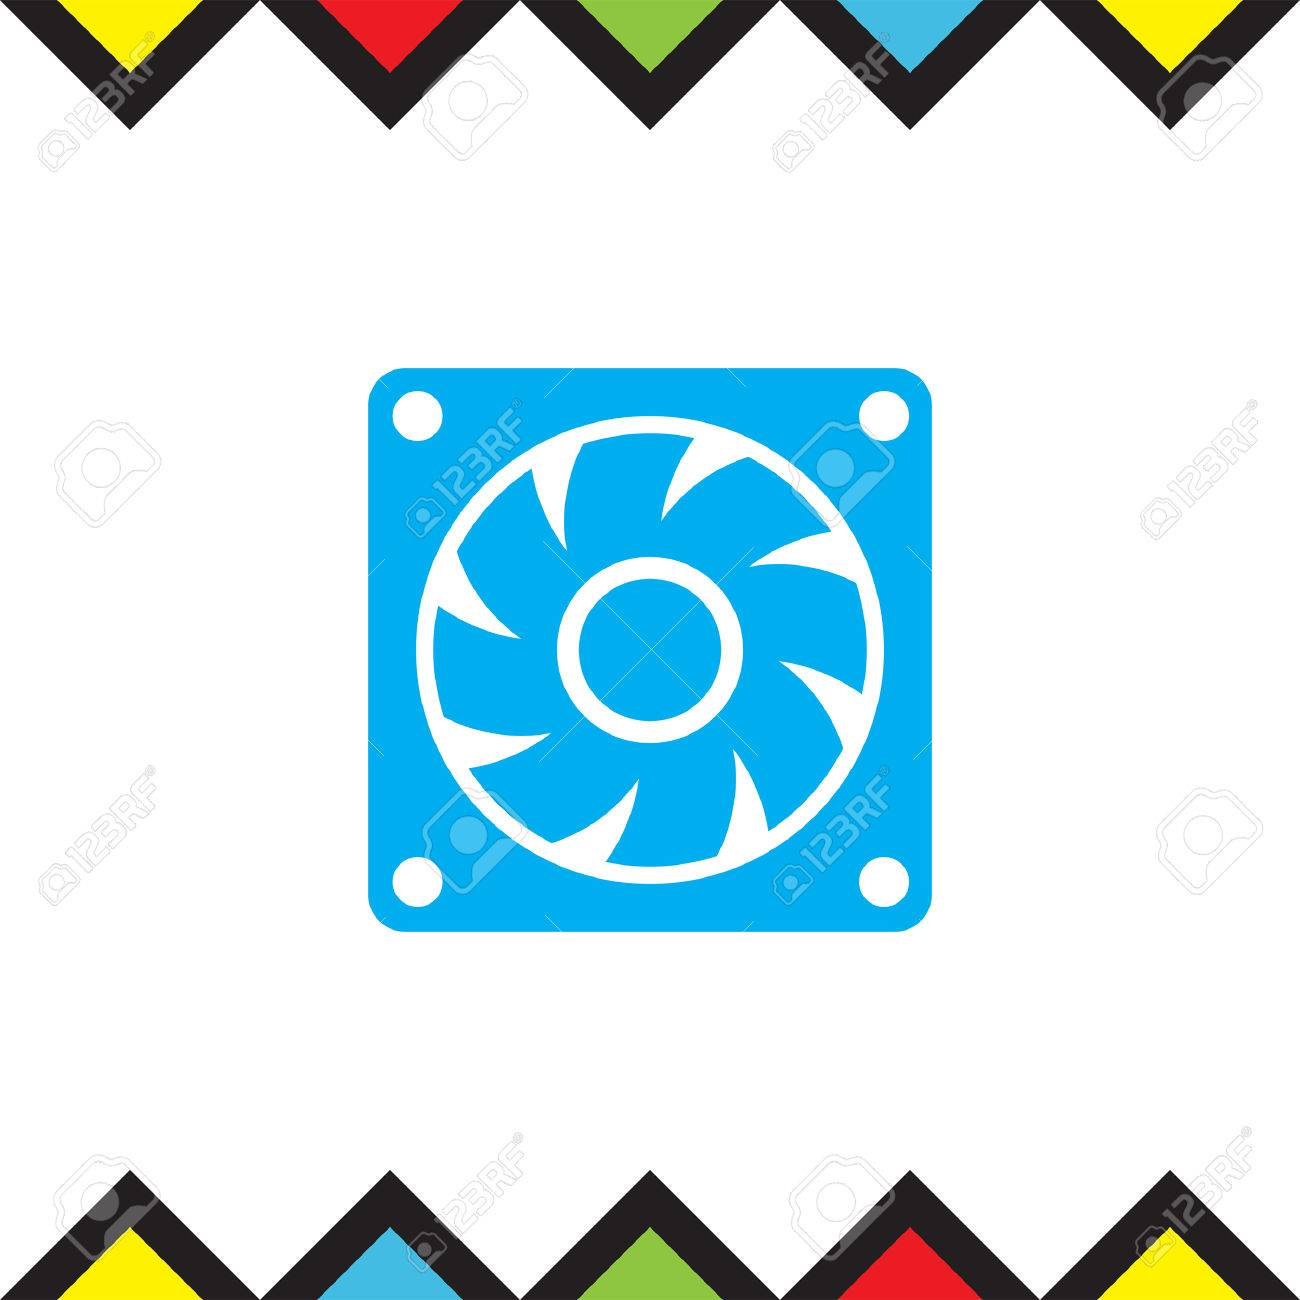 Unusual symbol for generator gallery electrical circuit diagram computer cooling fan vector icon pc cooler sign air generator buycottarizona Image collections